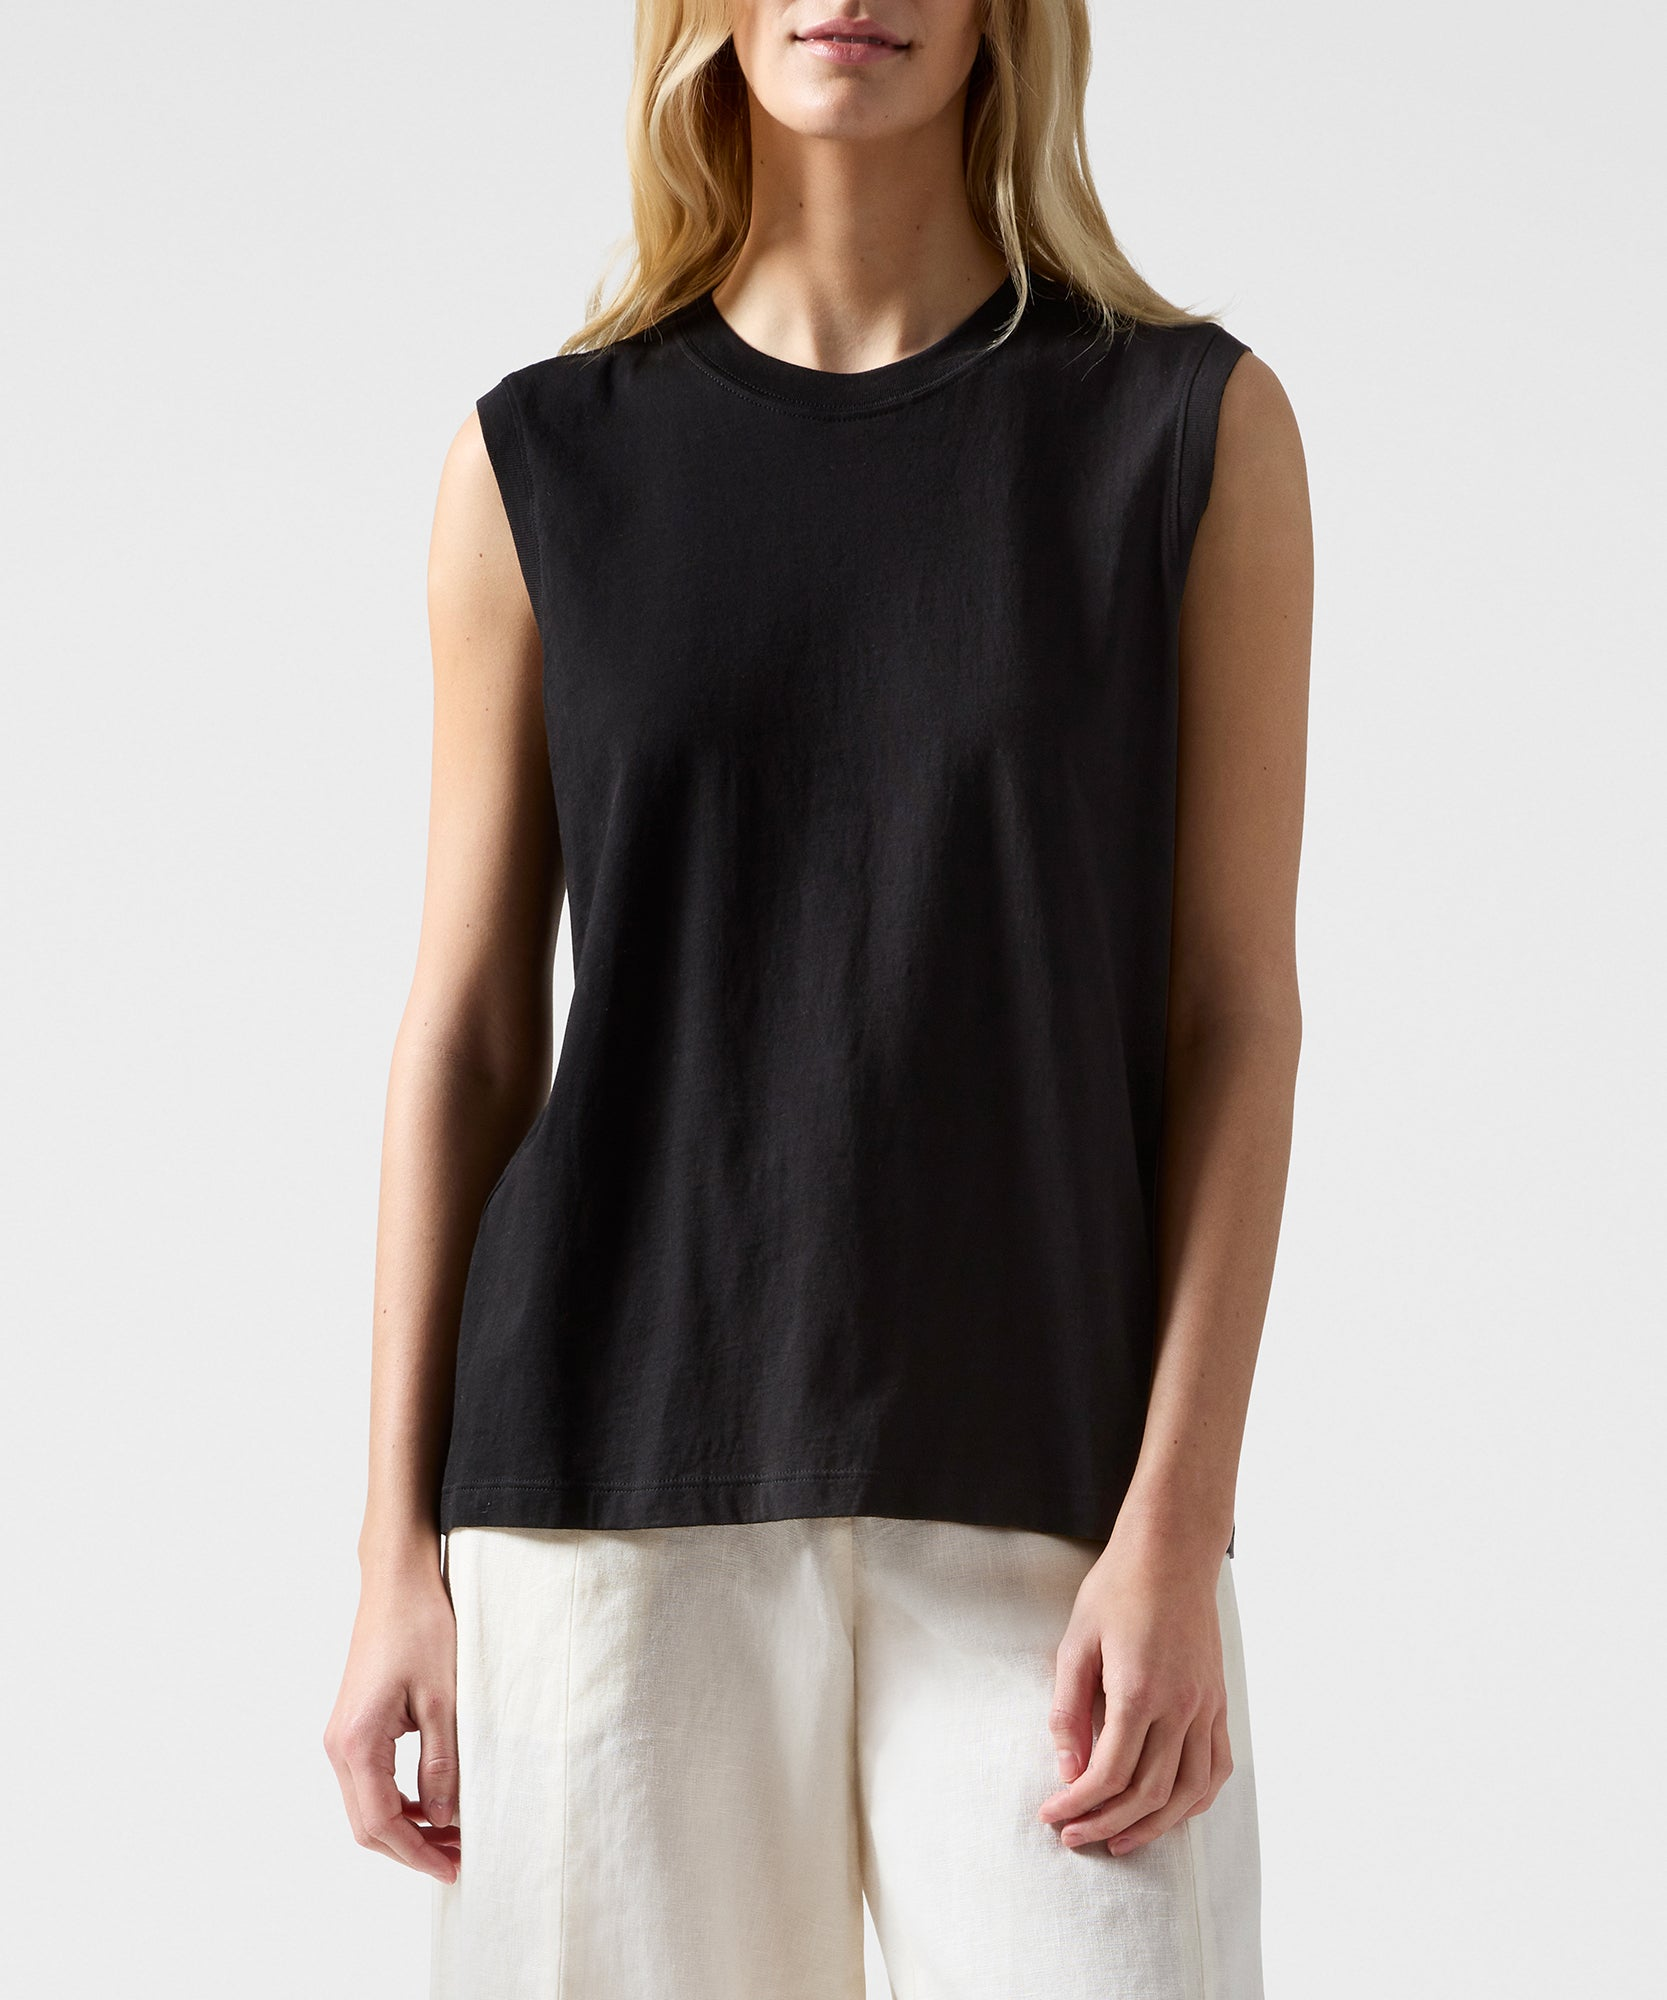 Black Classic Jersey Sleeveless Boy Tee - Women's Cotton Sleeveless T-shirt by ATM Anthony Thomas Melillo